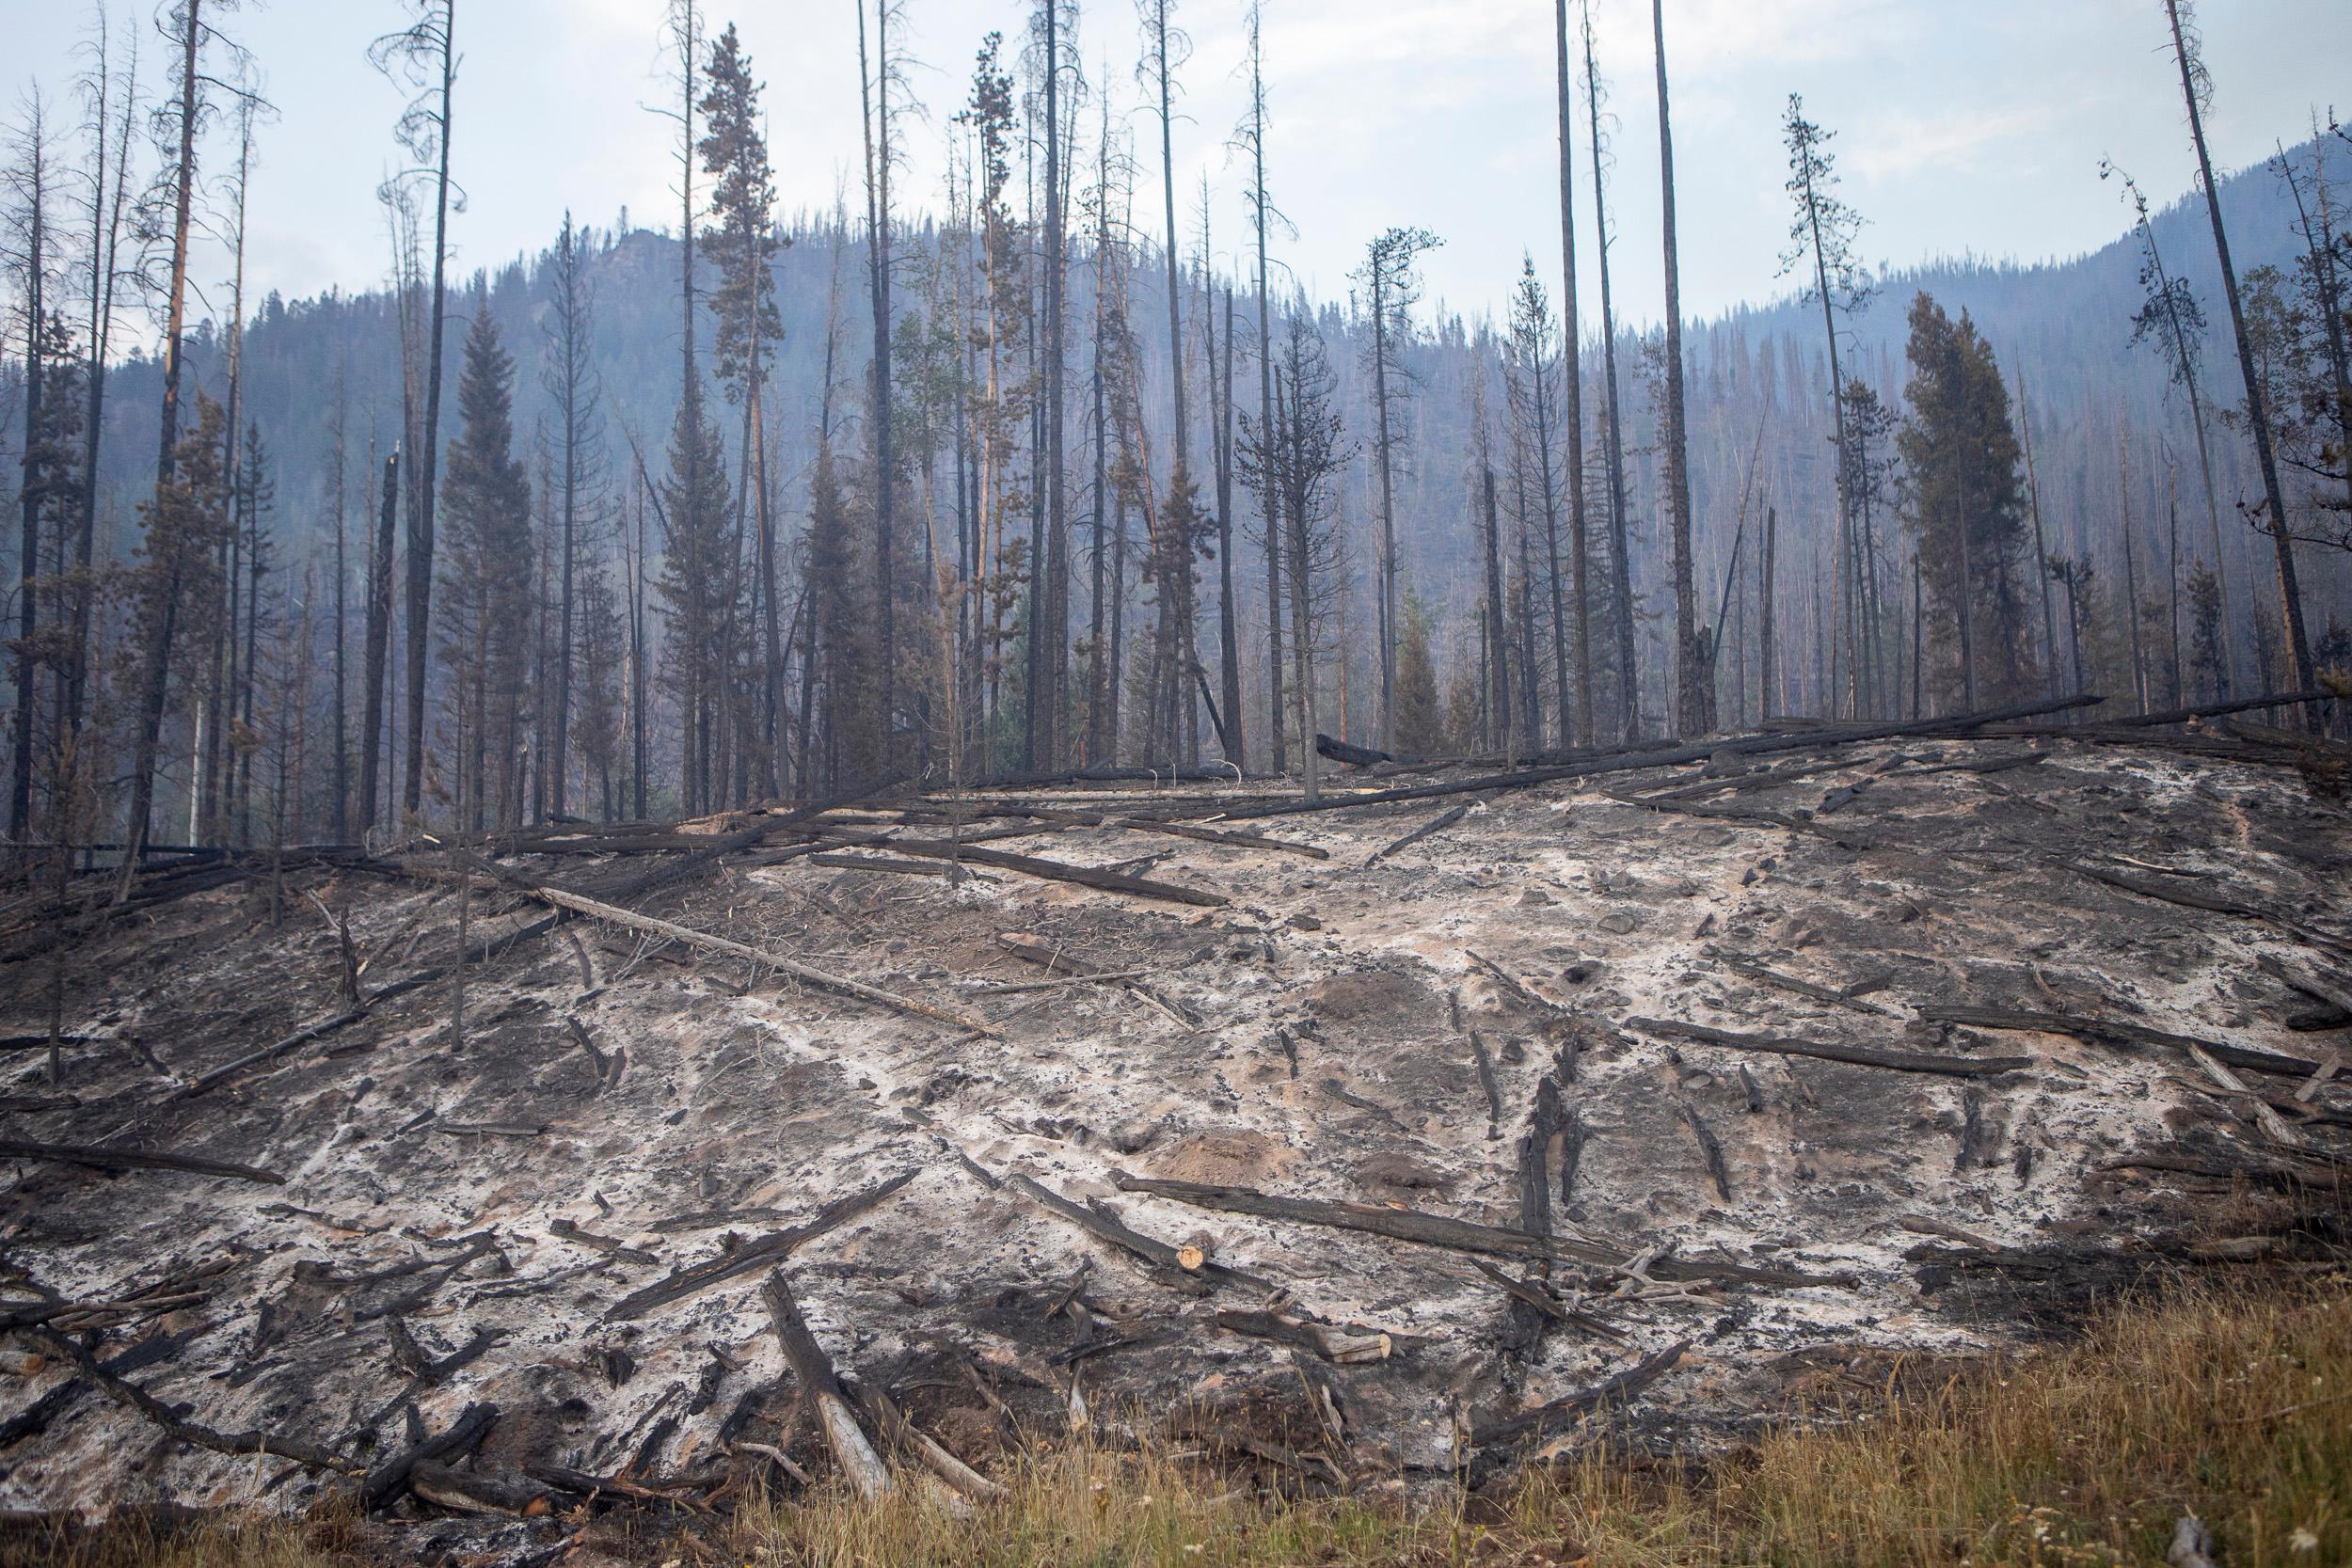 The fire will have long-term impacts on water supply in the Williams Fork River basin. Photo credit: InciWeb.